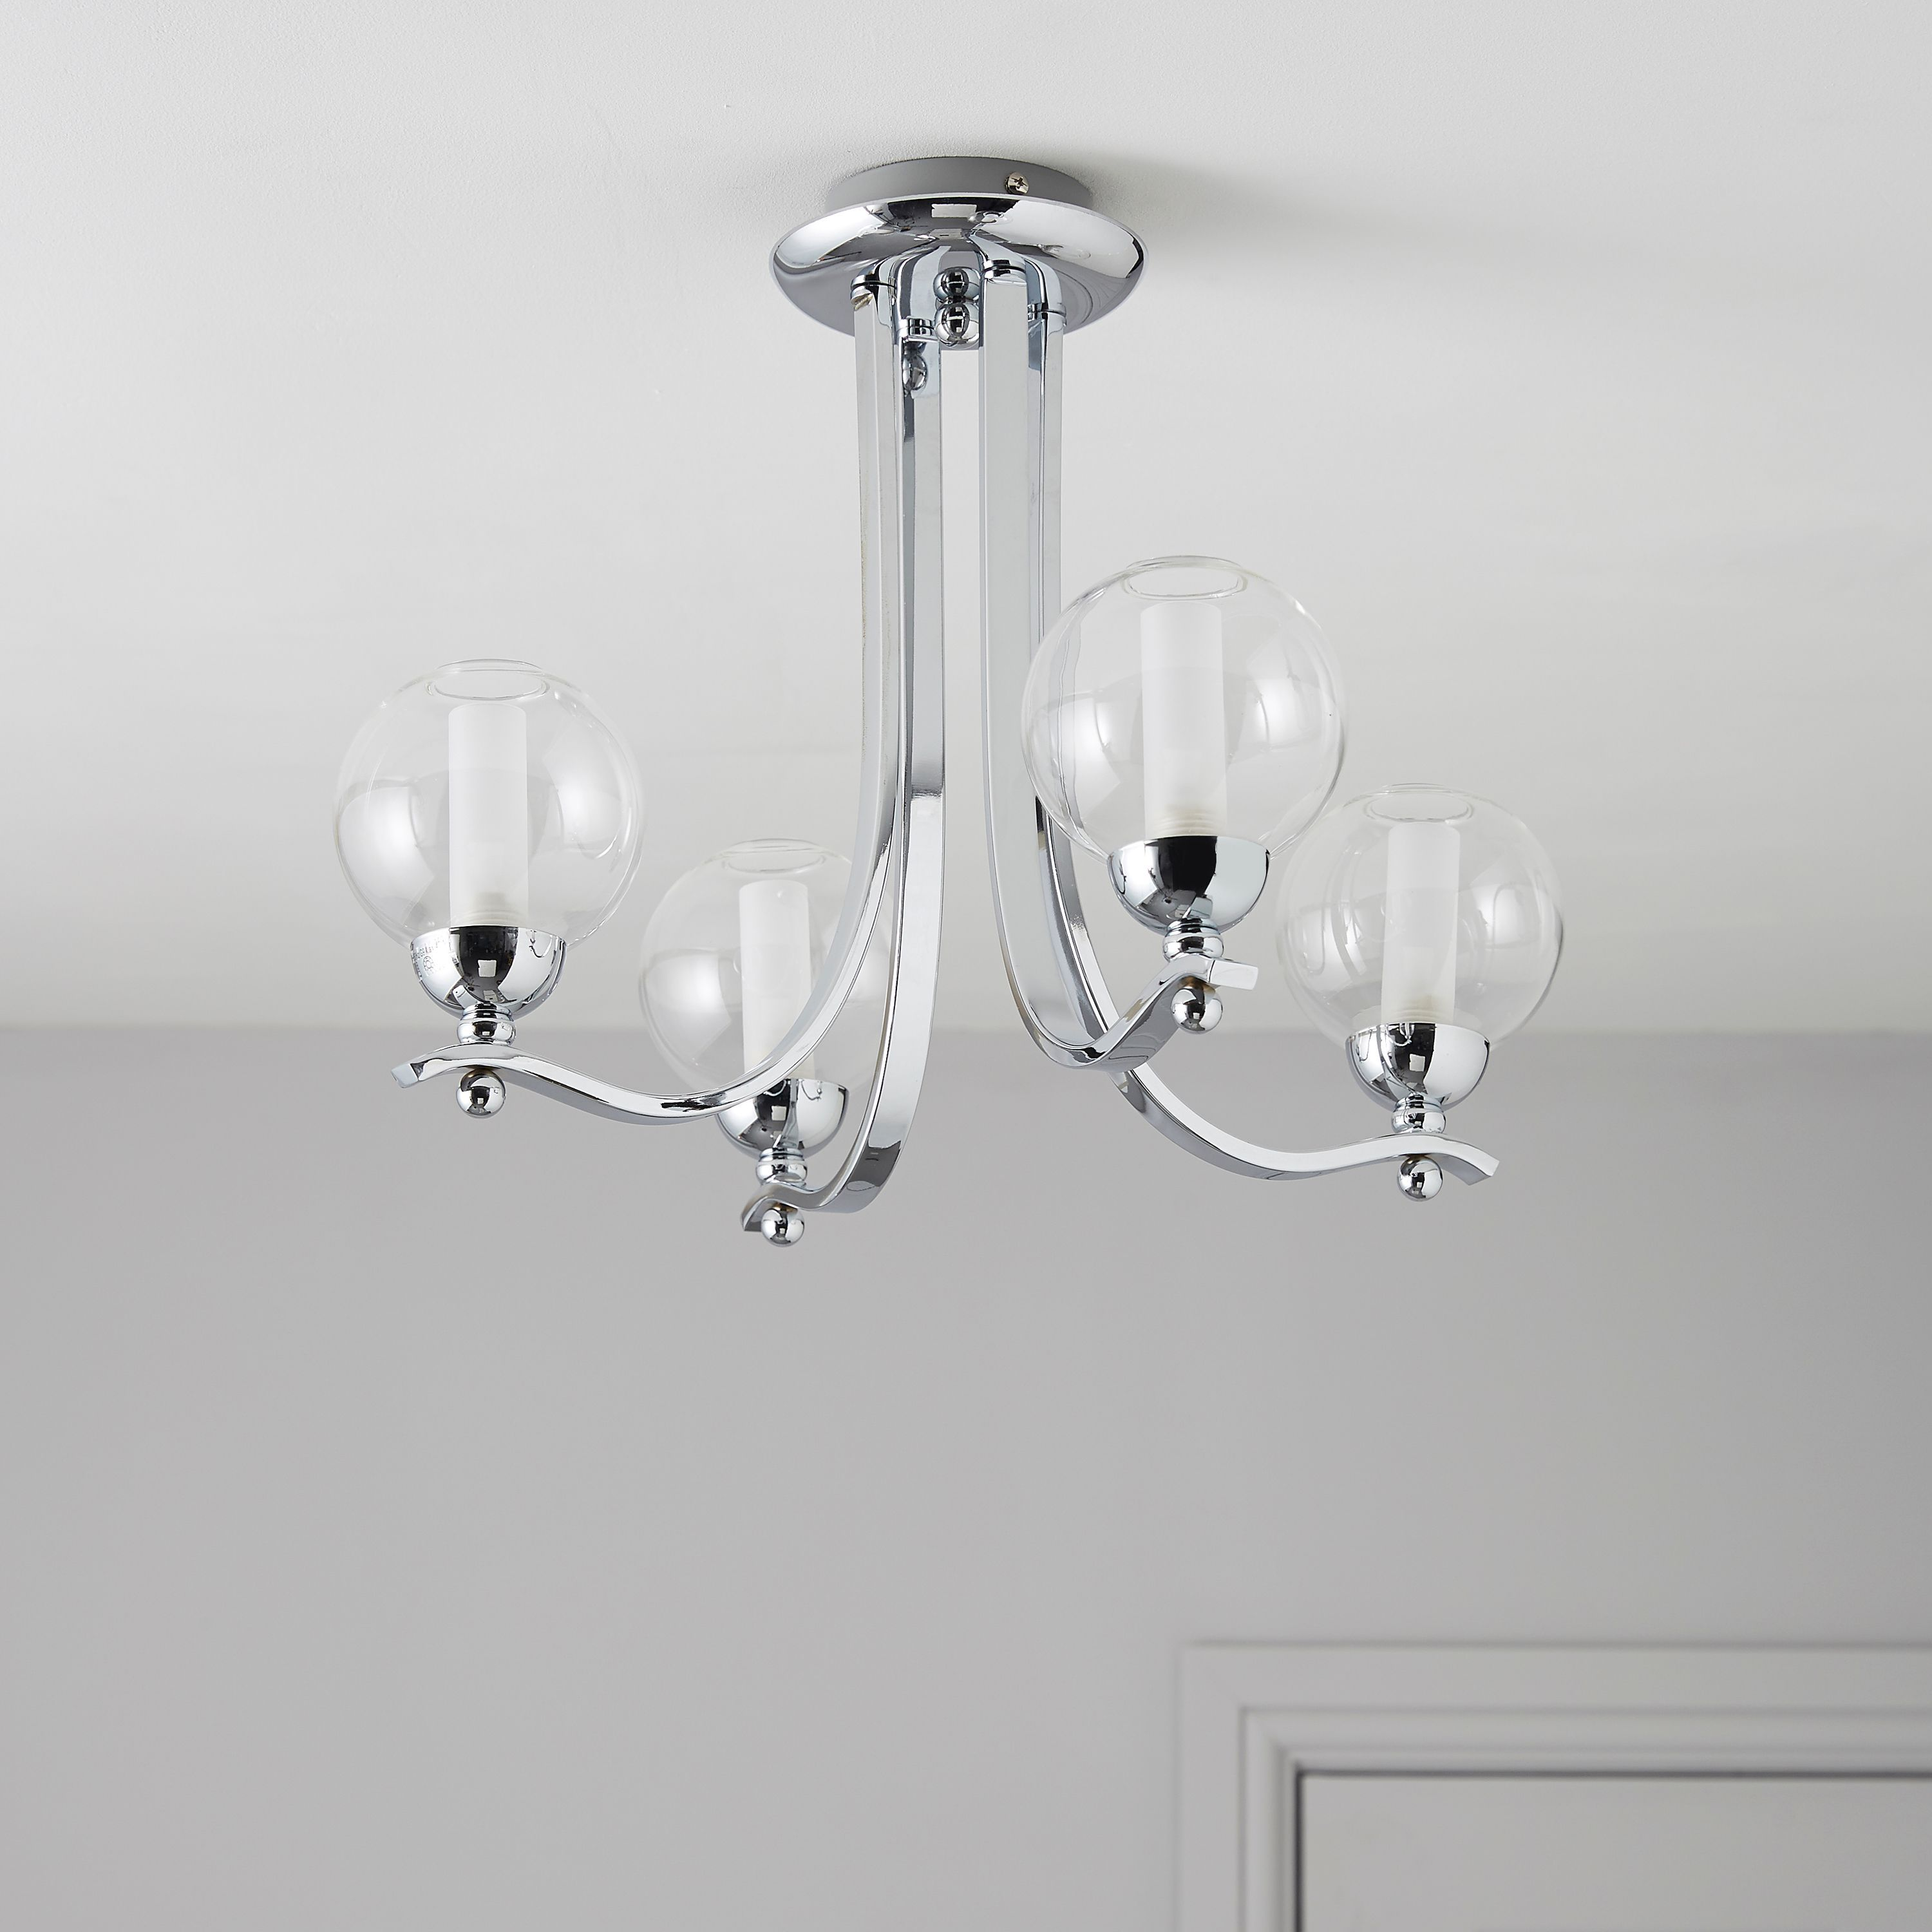 Giselle Glass Ball Silver Chrome Effect 4 Lamp Ceiling